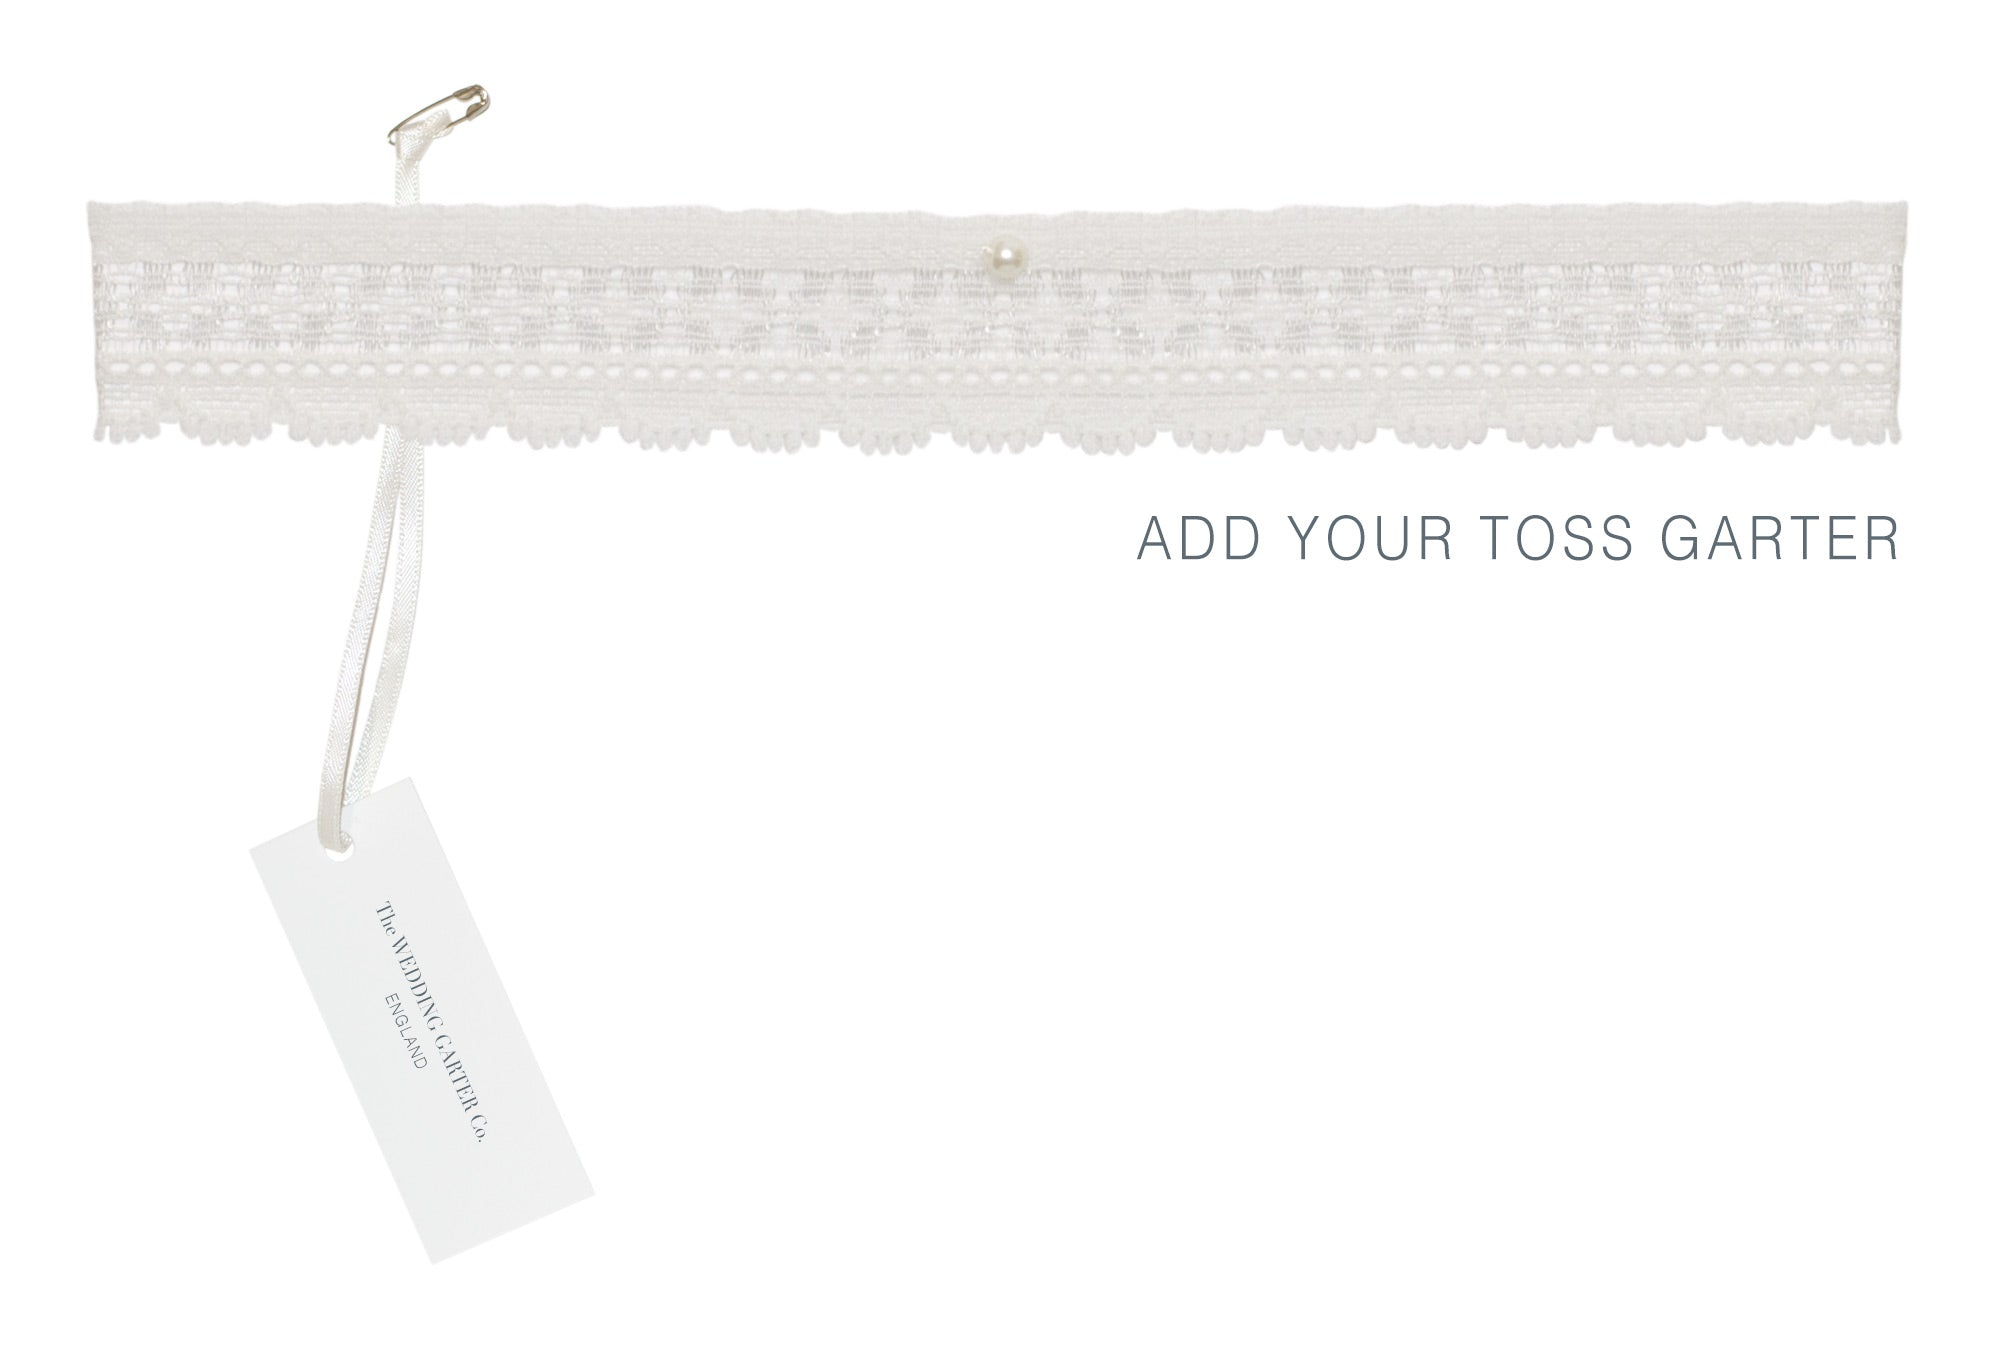 What is a toss garter?